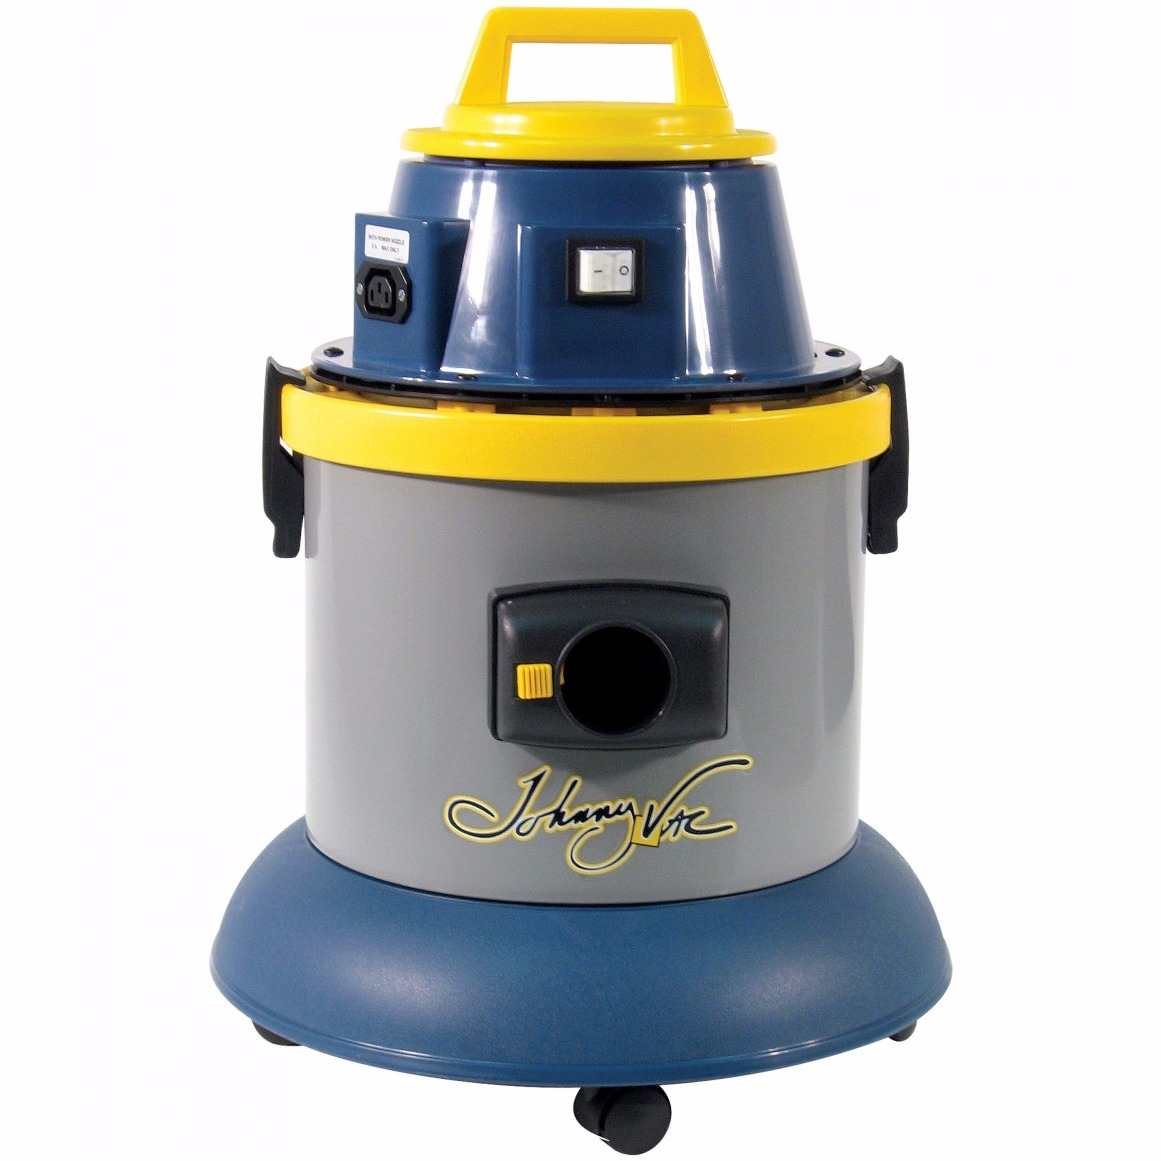 https://www.speedyvacuum.ca/public/uploads/products_photo/58e68fac0a9a3.jpg